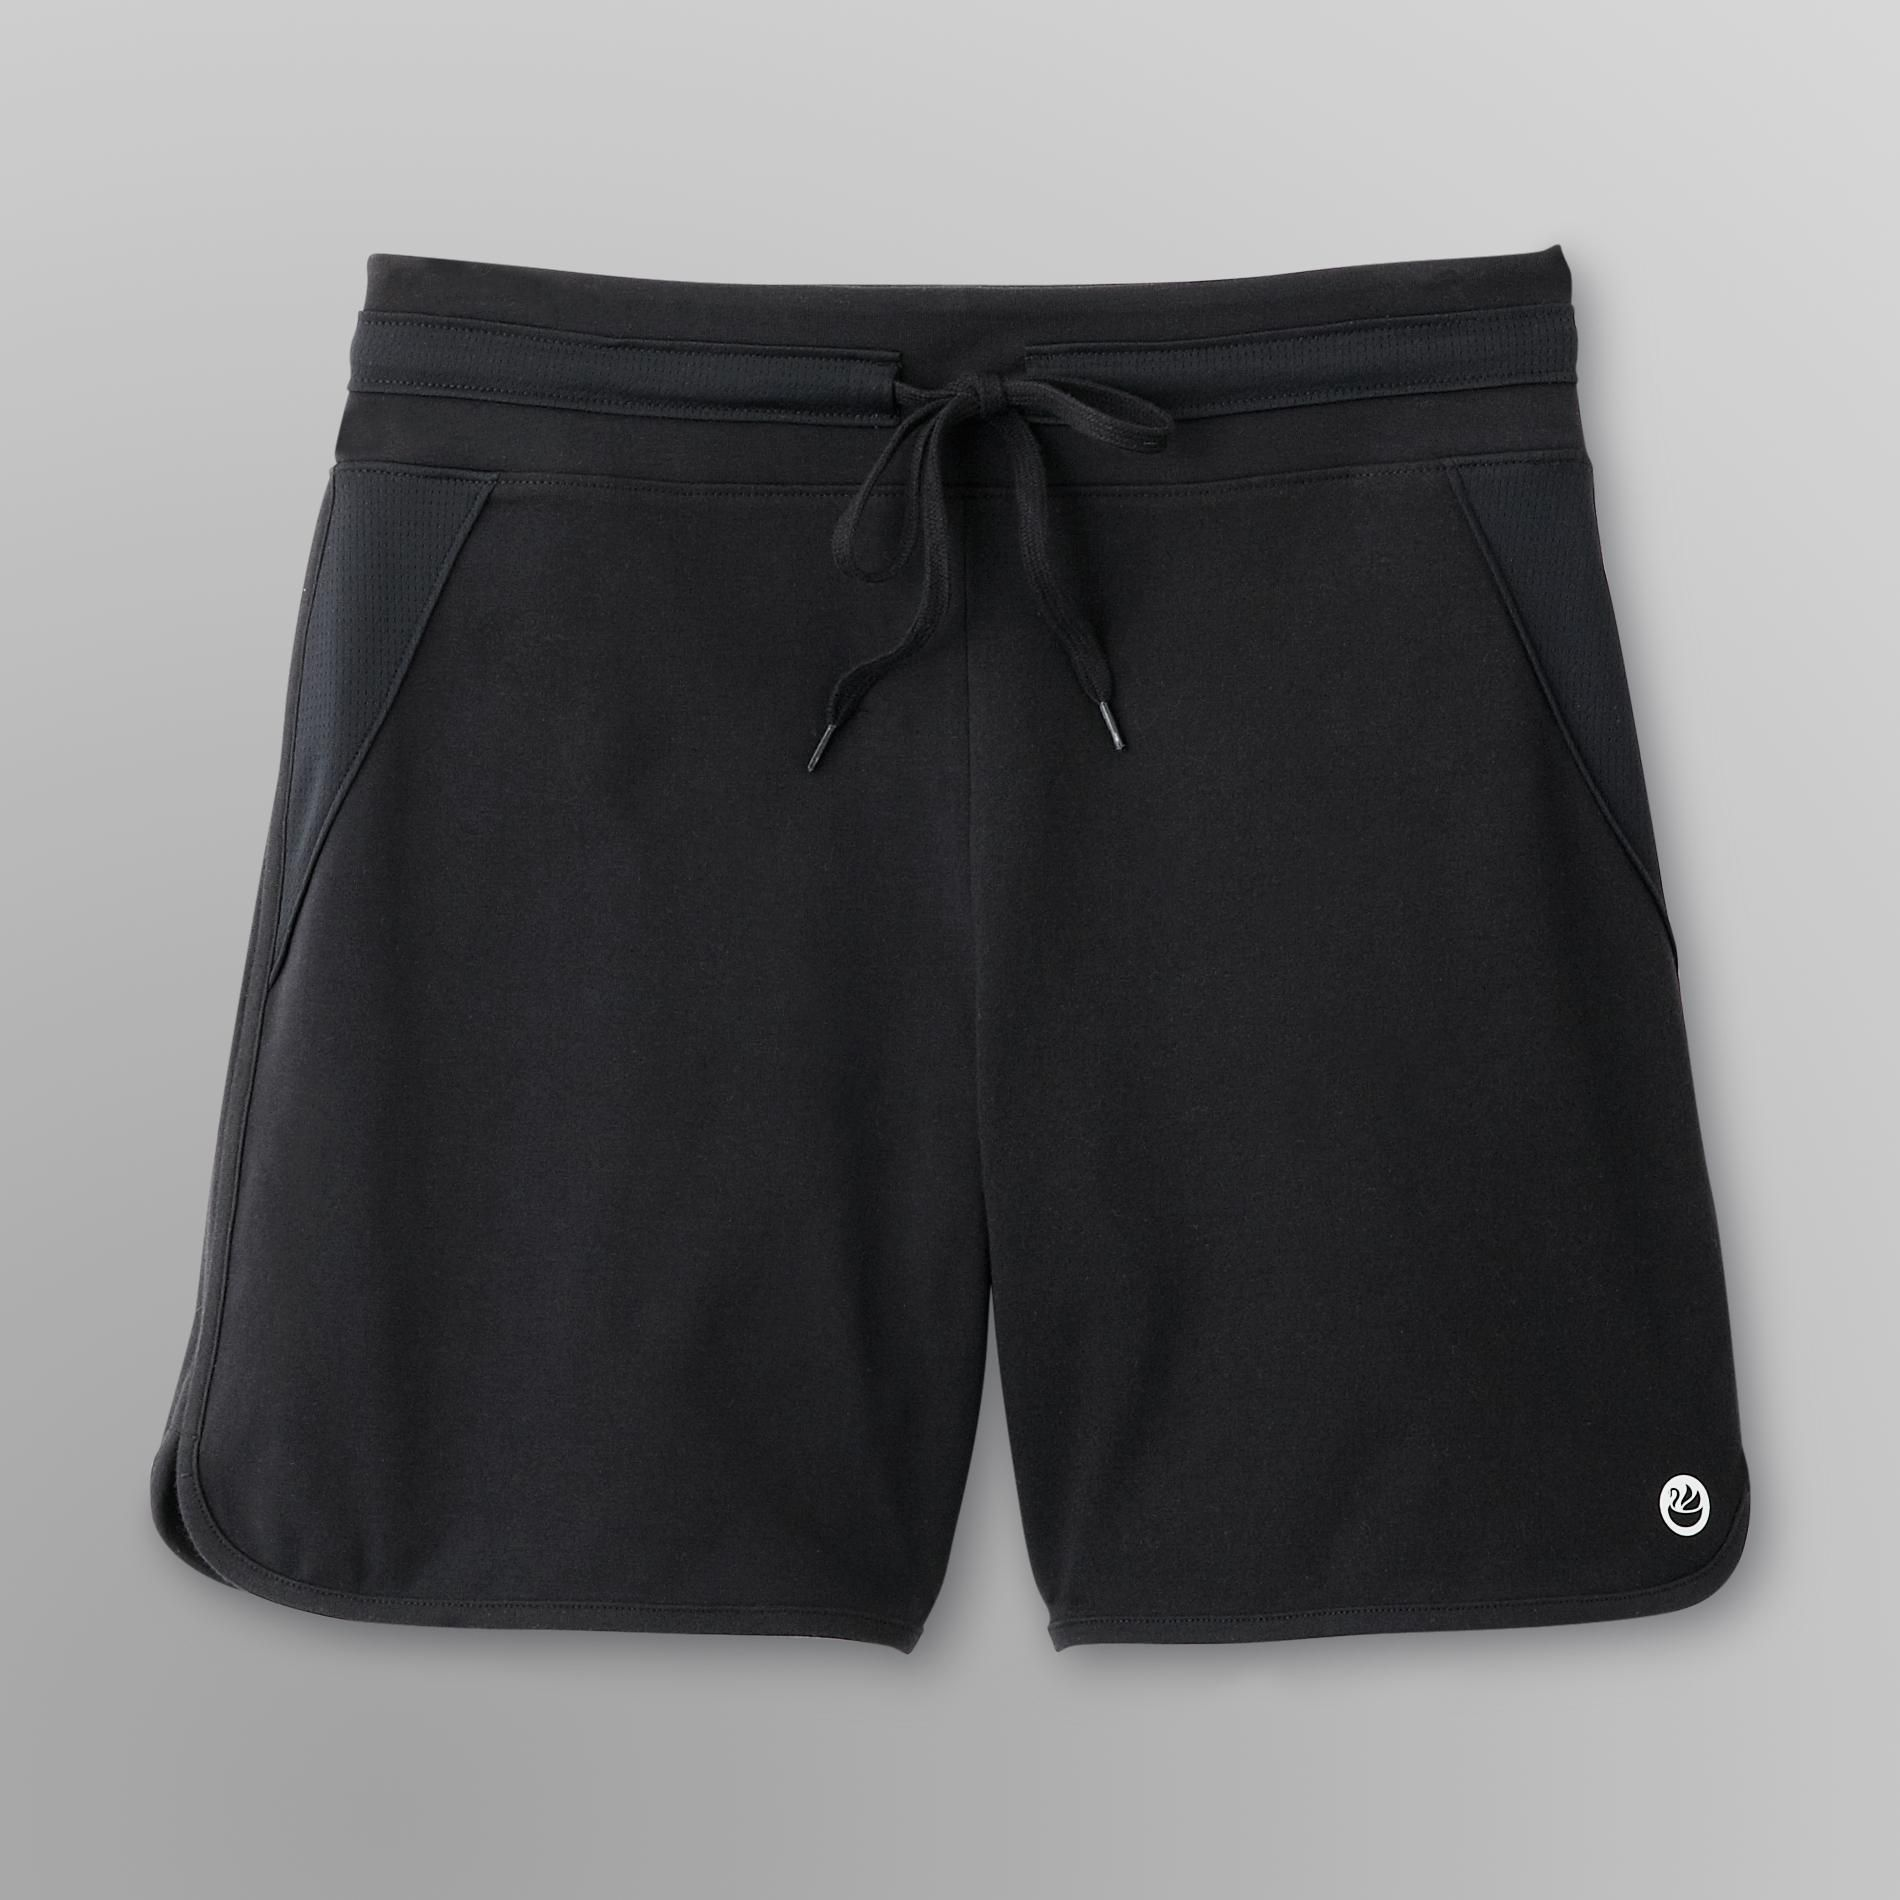 GV Sport Women's Jersey Knit Shorts at Sears.com